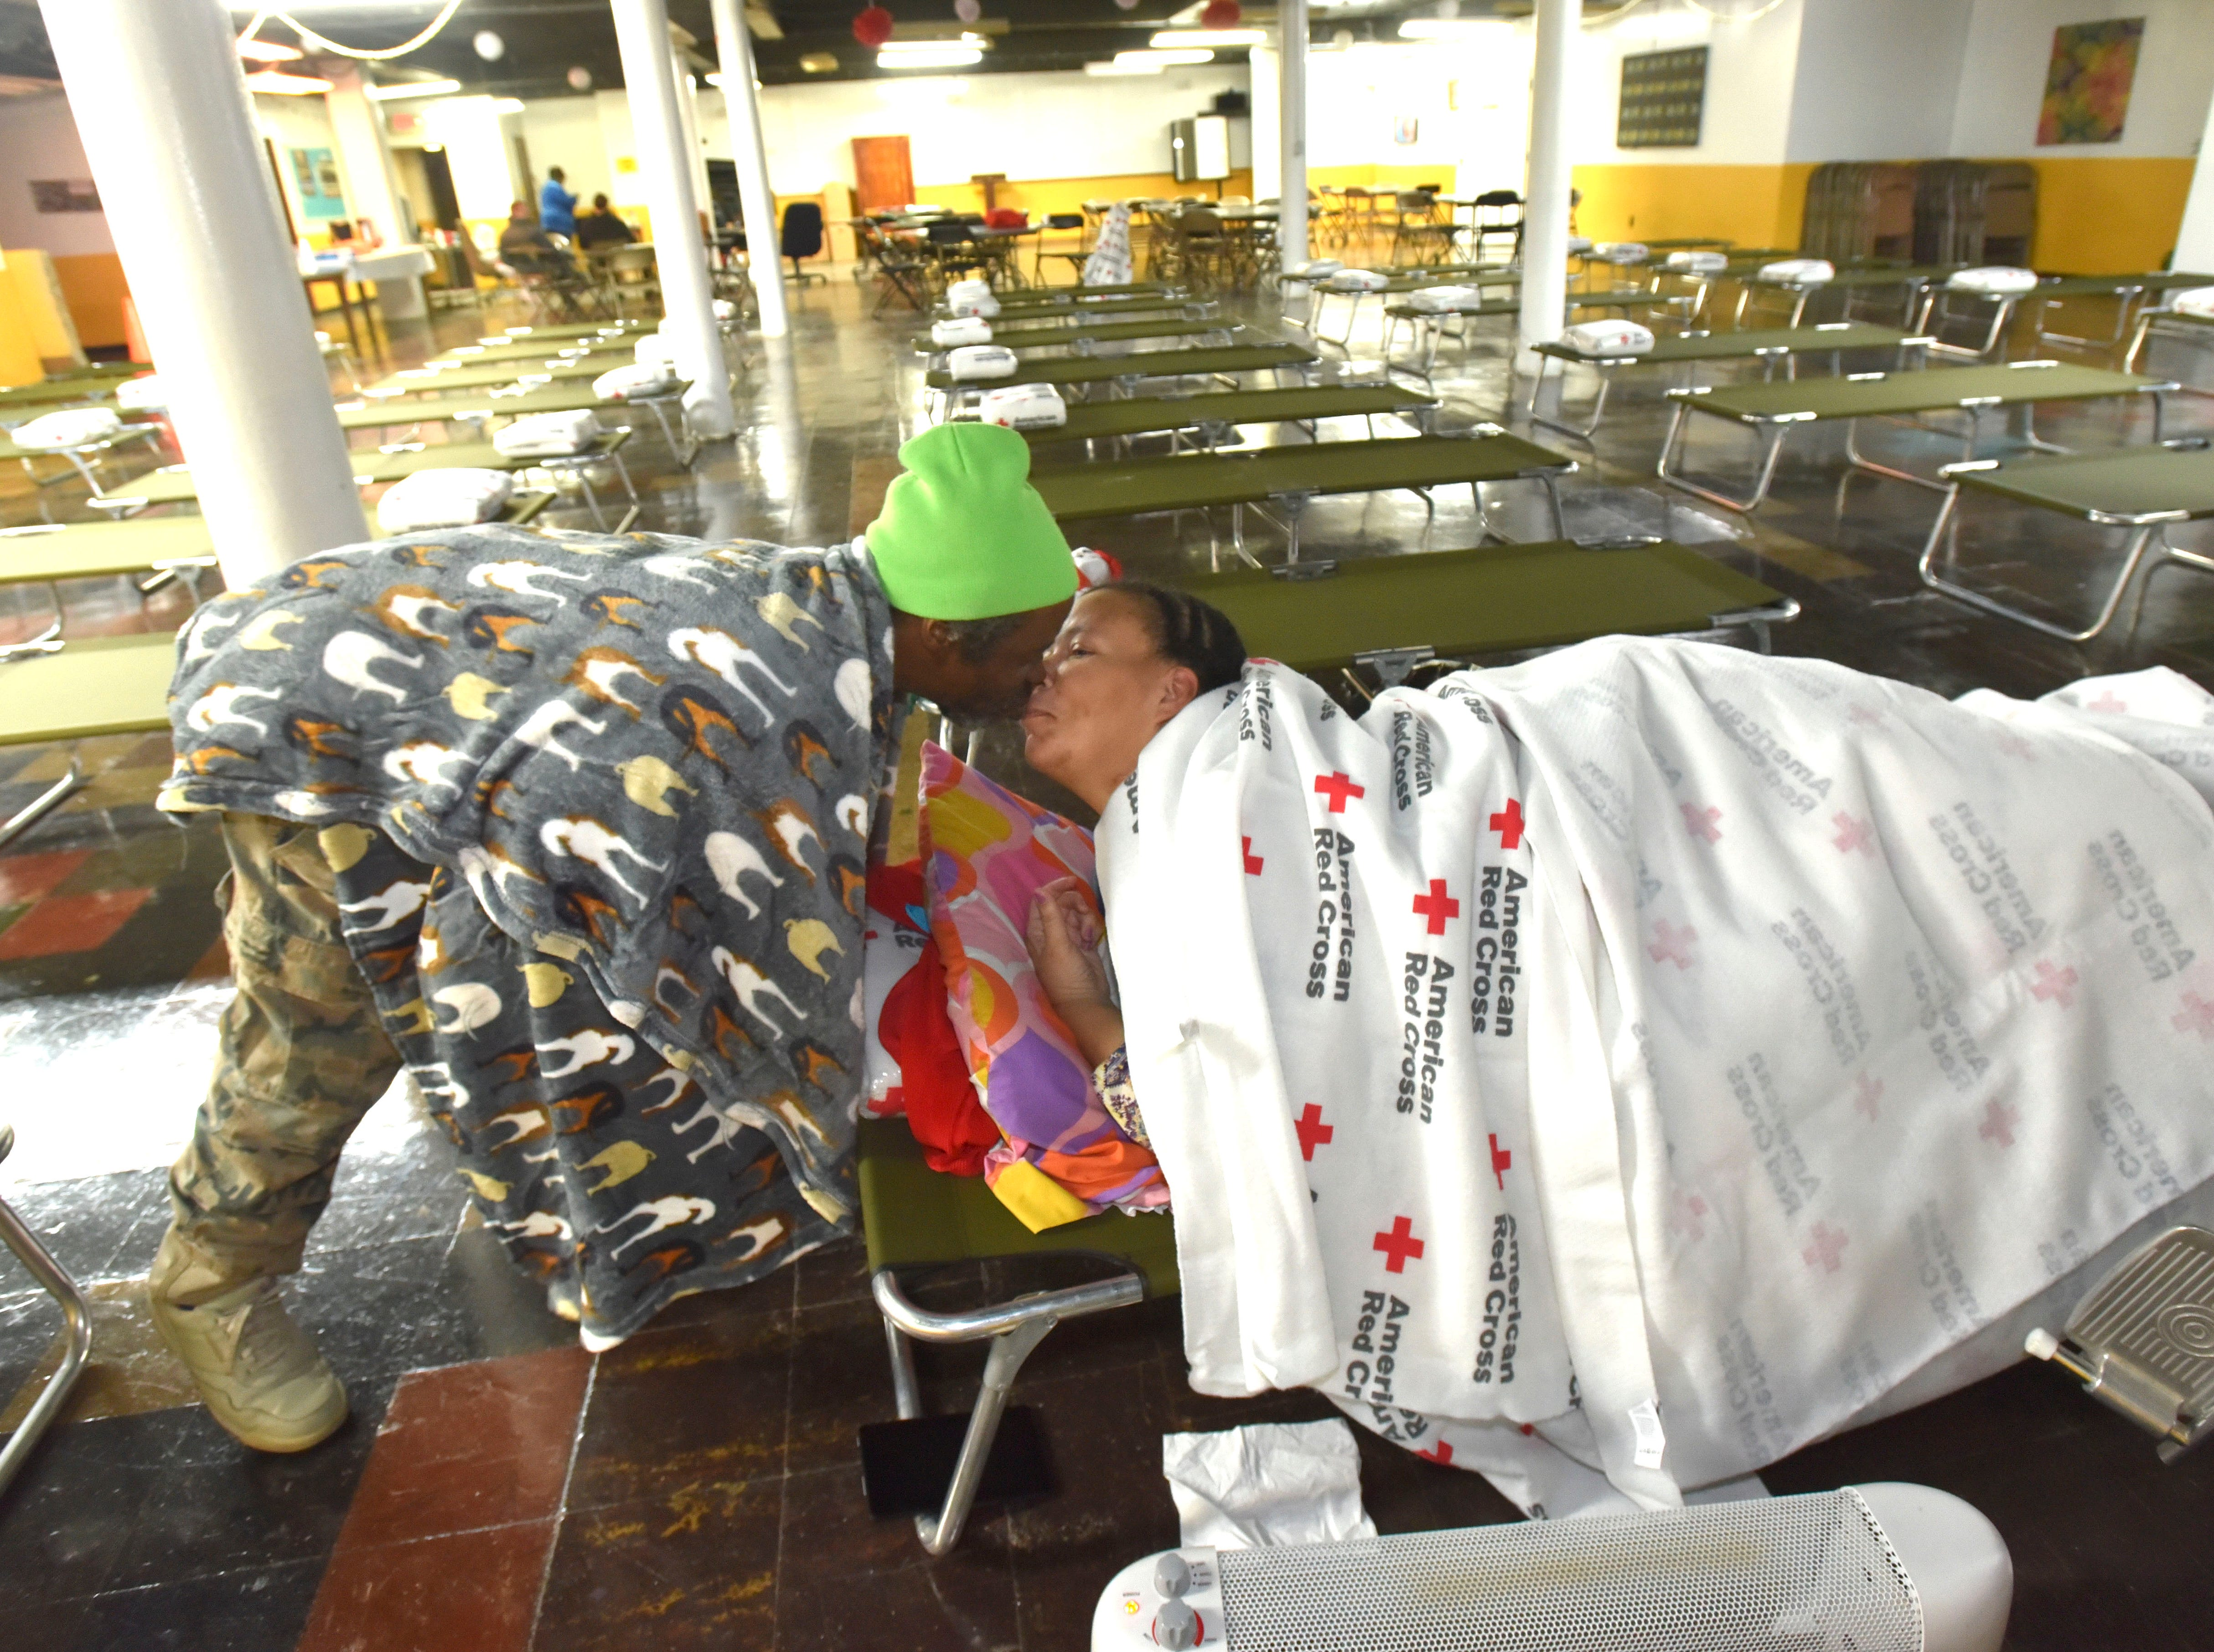 Anton Maurice Spann Sr., 56, gives wife, Shavonne Spann, 33, both of Detroit, a good-morning kiss Wednesday, Jan. 30, 2019. They were the only people to stay at the St. Augustine / St. Monica Catholic Church warming center Tuesday night. The Michigan Region of The American Red Cross has provided 50 cots for people needing the warming center, that is open 24 hours a day until Friday at 8 a.m. Personal necessity items and warm food is also available. Anton and Shavonne, his wife of 15 years, live close by in a two-family flat they rent for $400 per month. Their electricity bill is also $400 a month and they can't afford both, so Anton turned off the electricity and will stay at the warming center so they can pay both bills in the future.